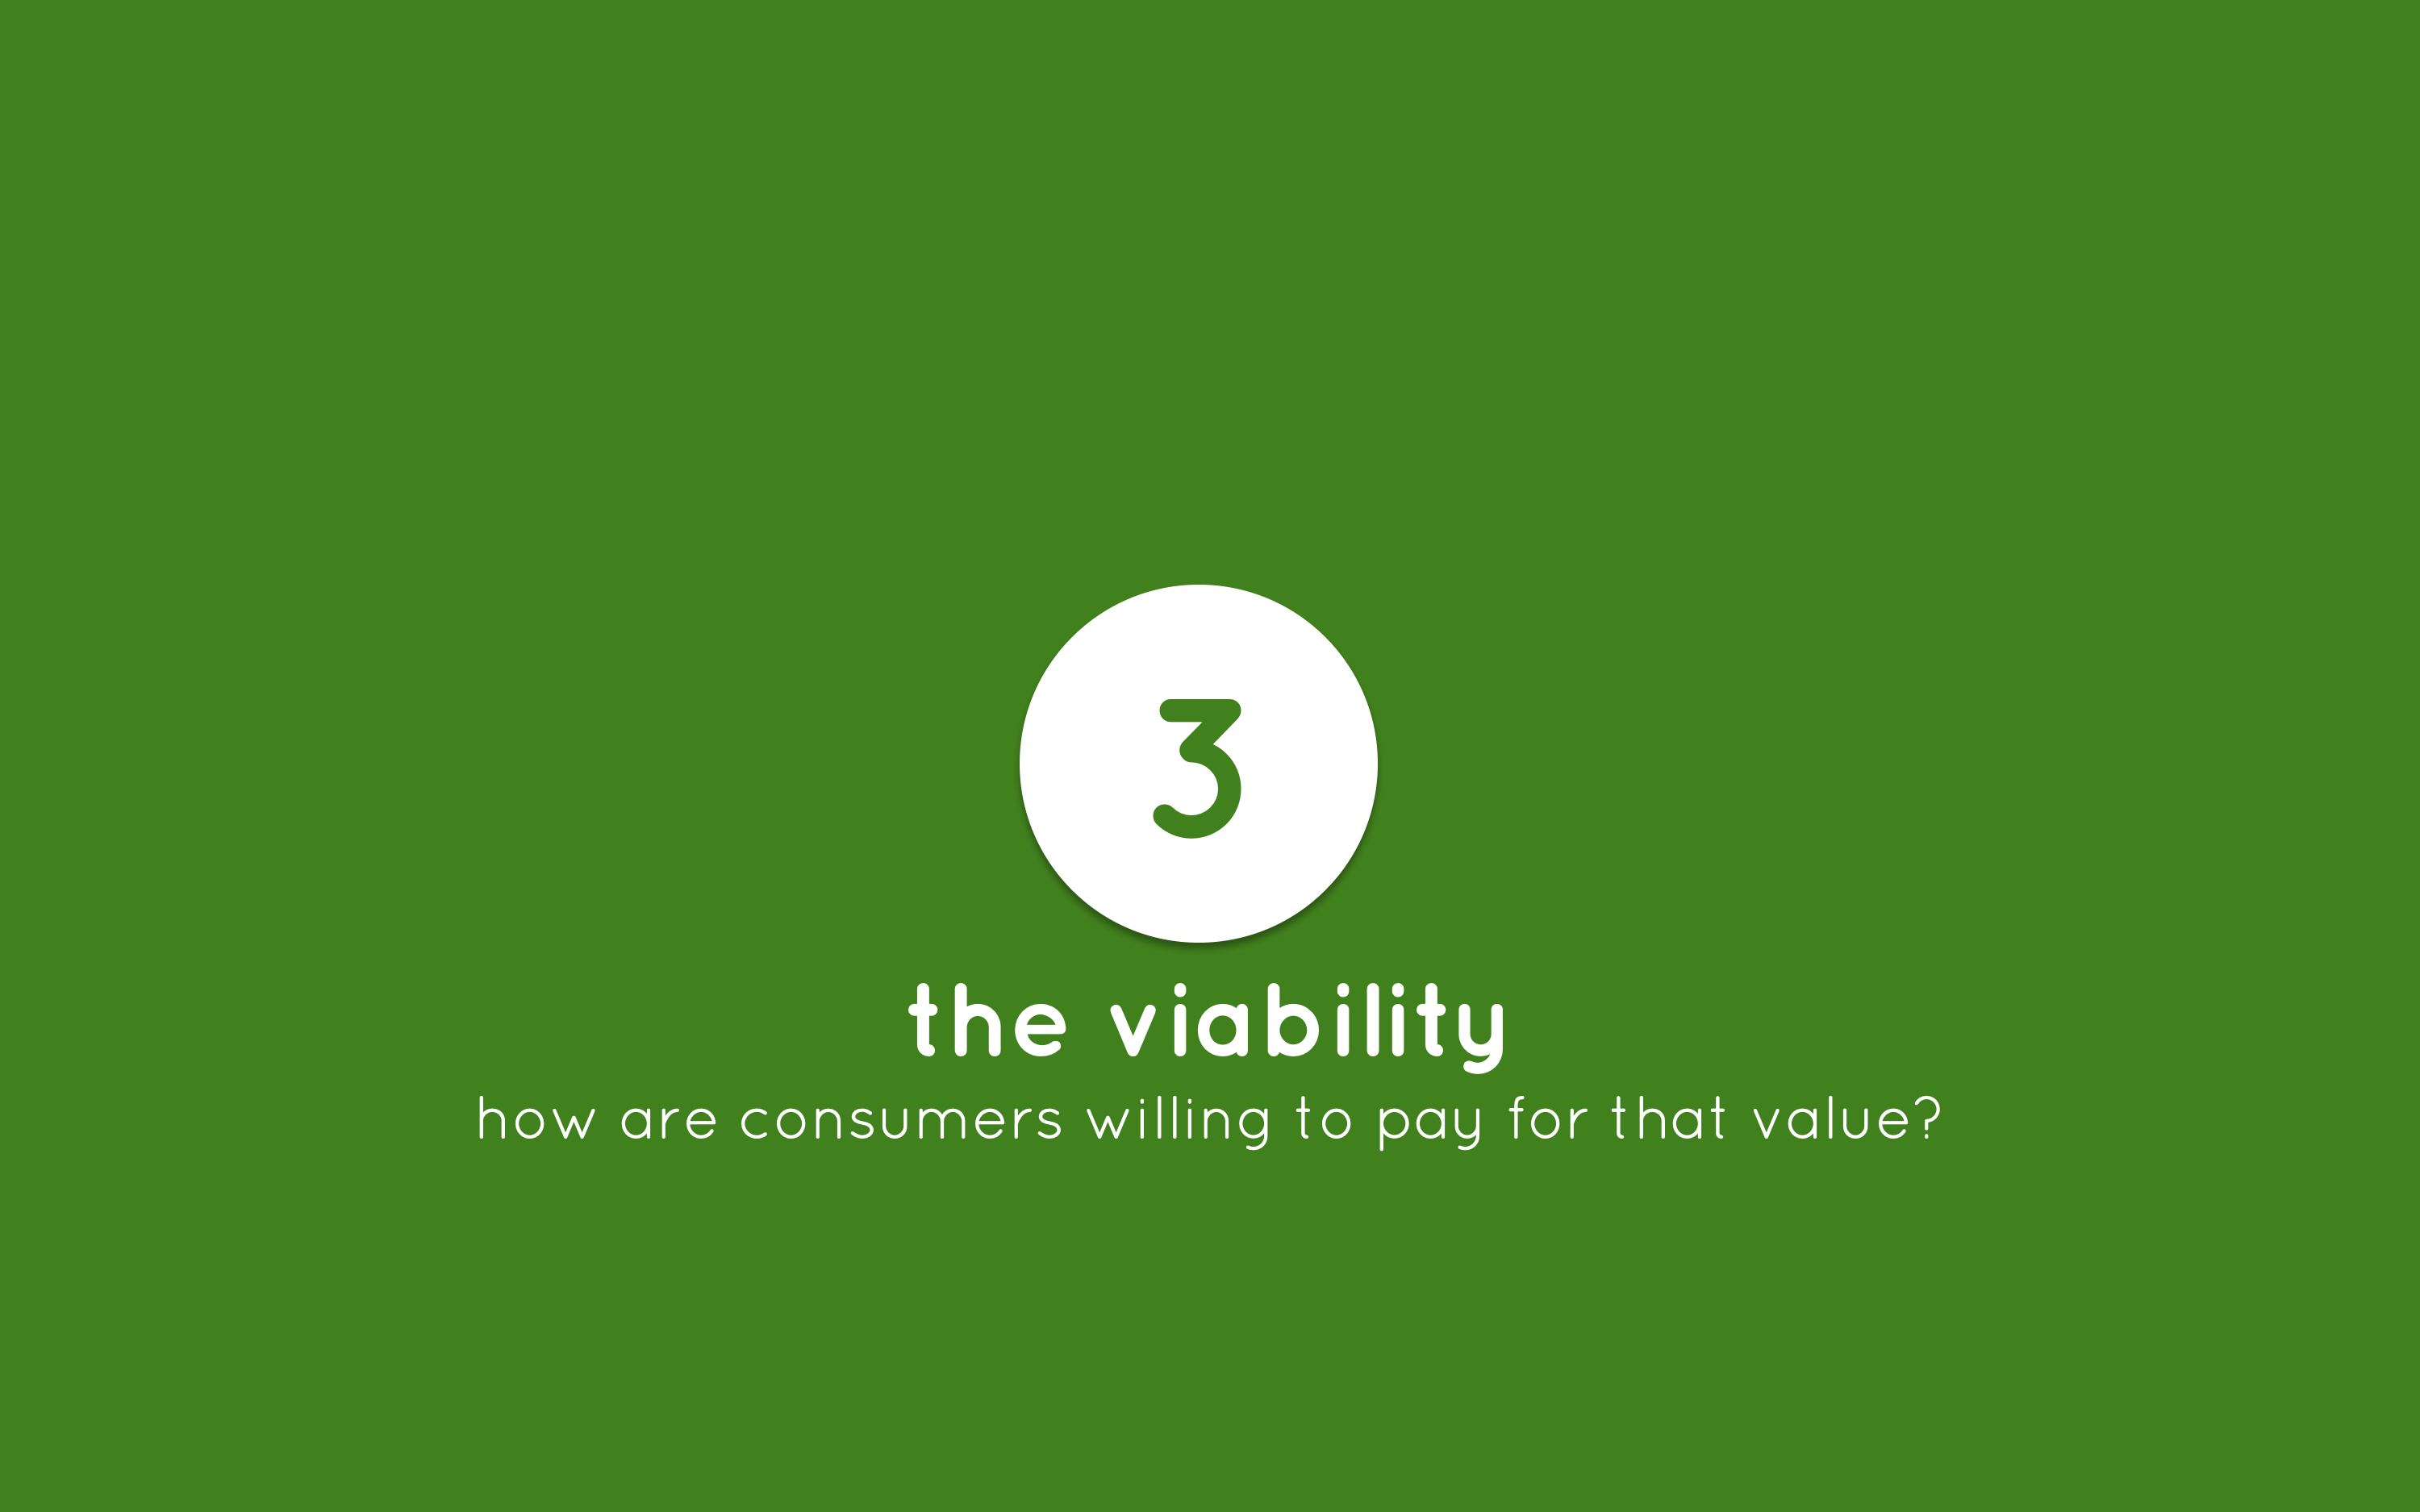 Human-Centered Entrepreneurship step 3 the viability